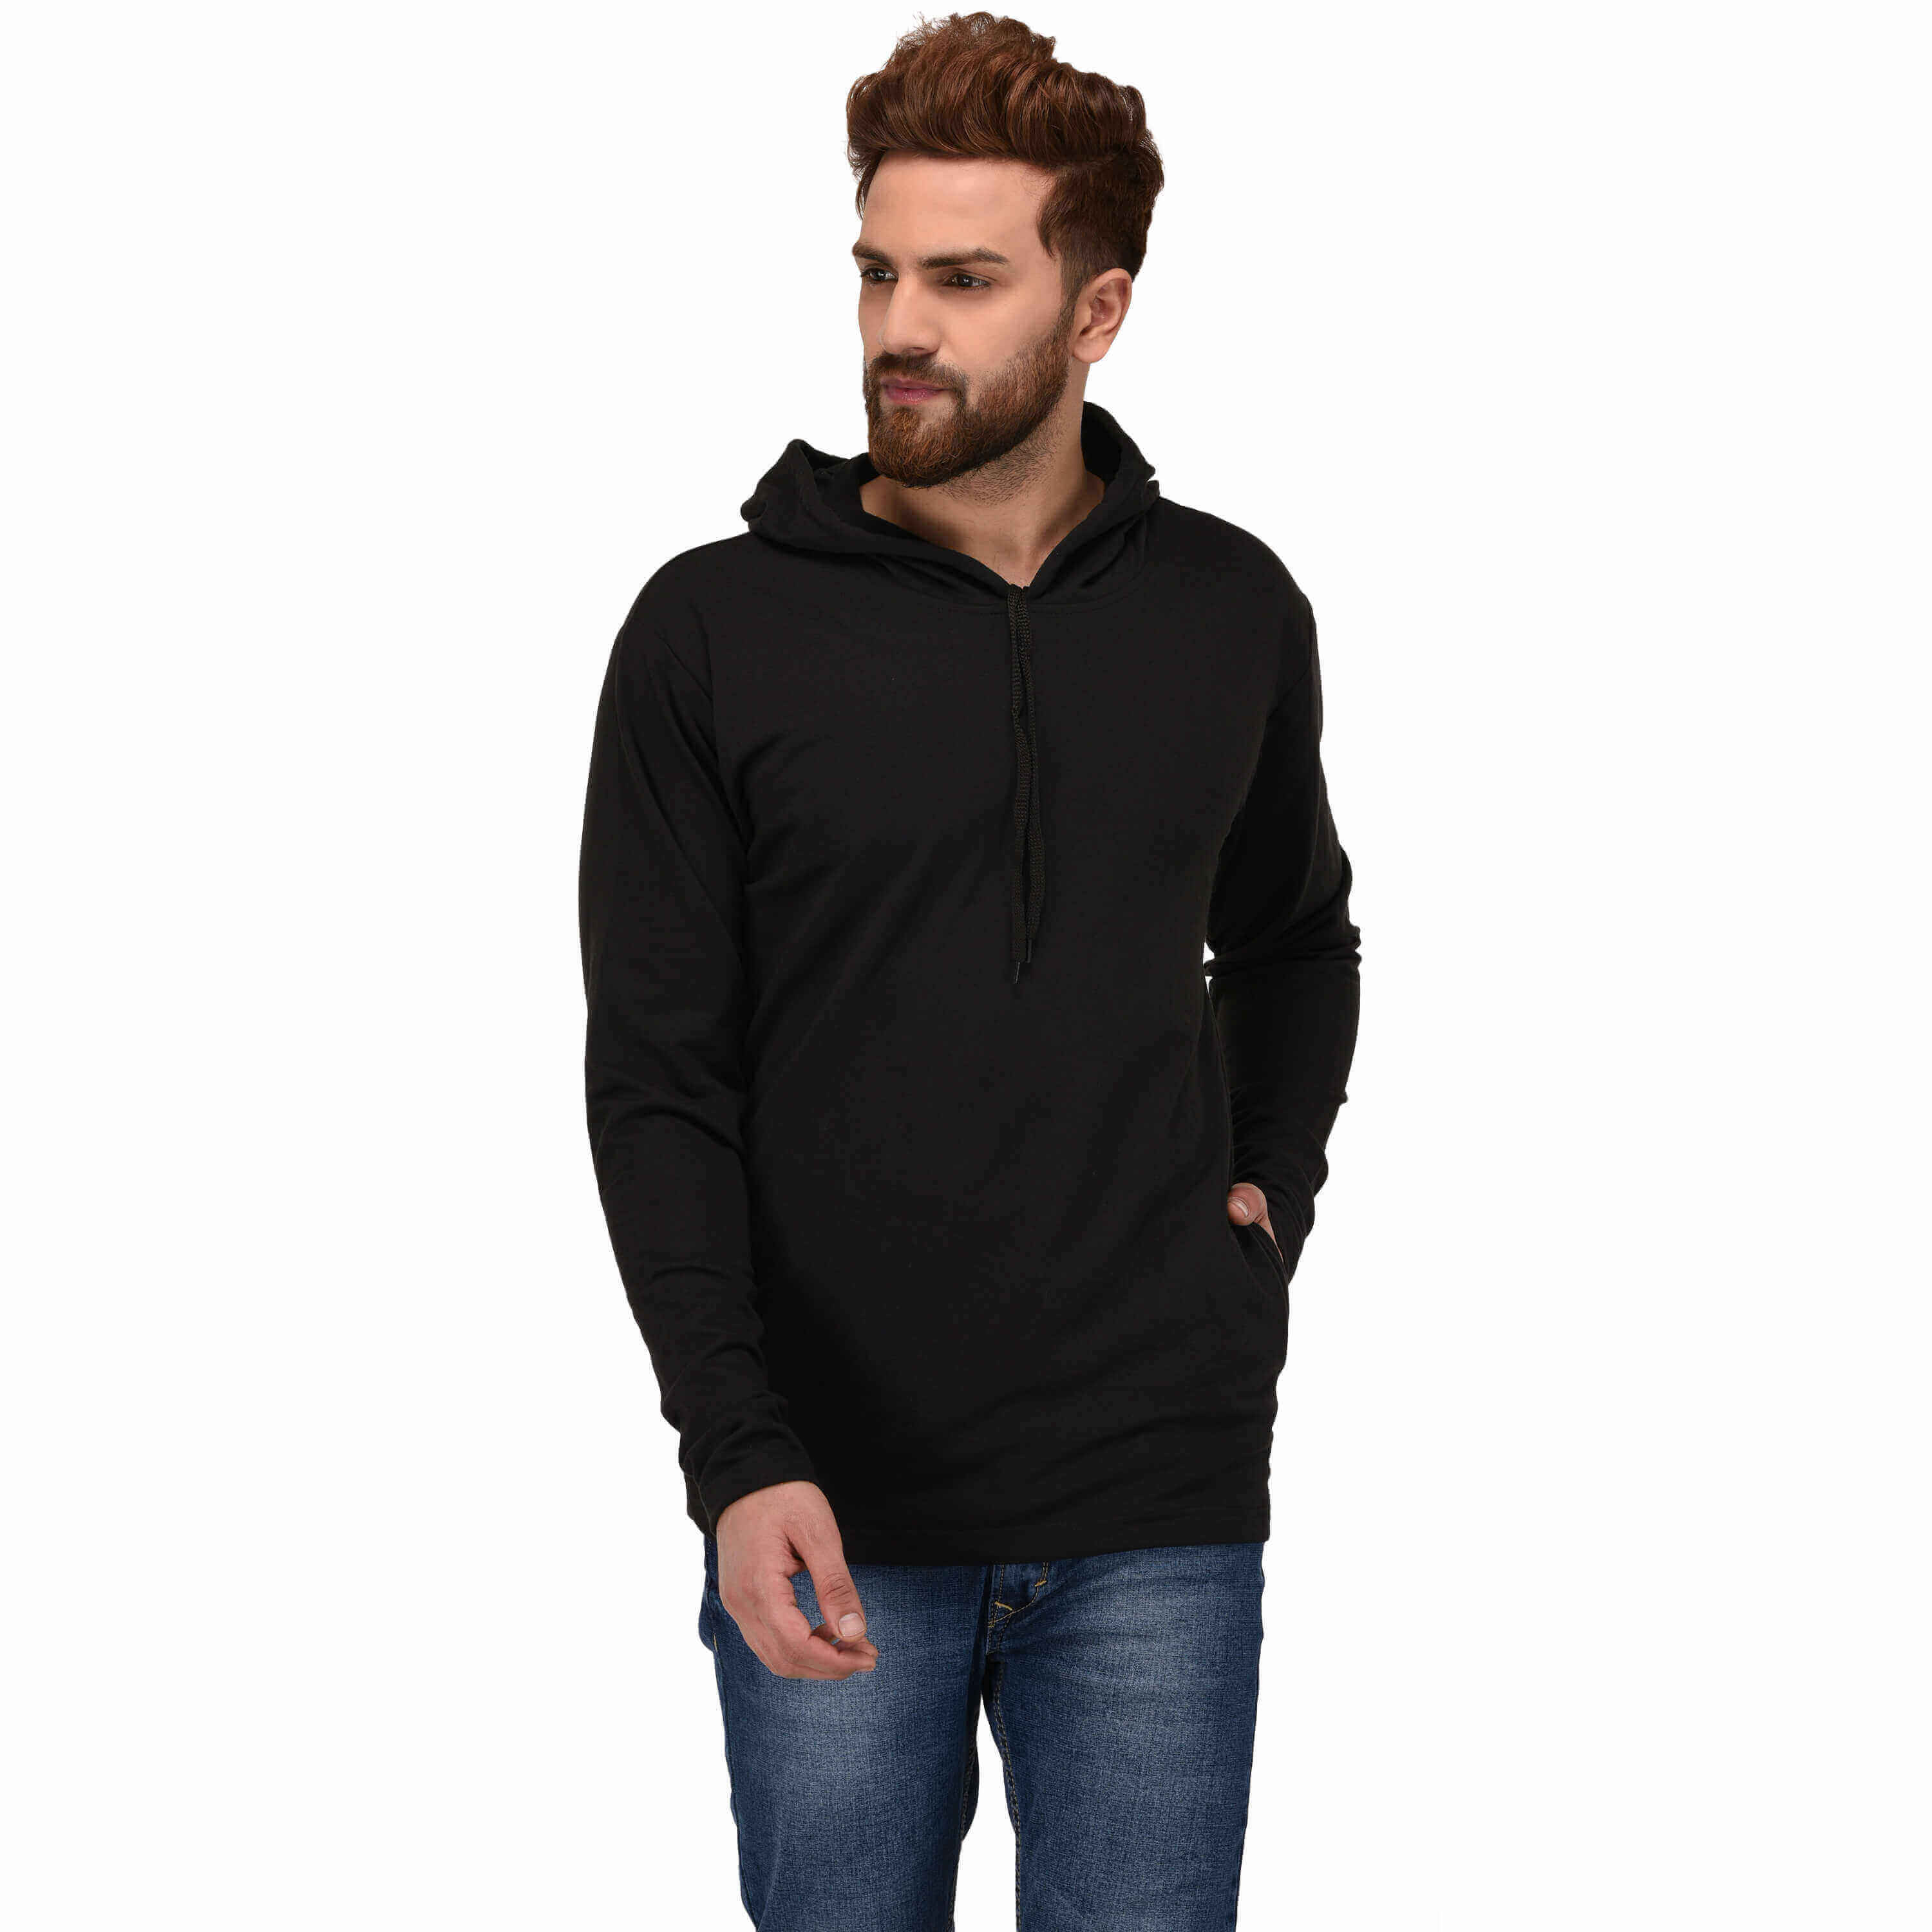 Sports Hoodies Manufacturers in Algeria